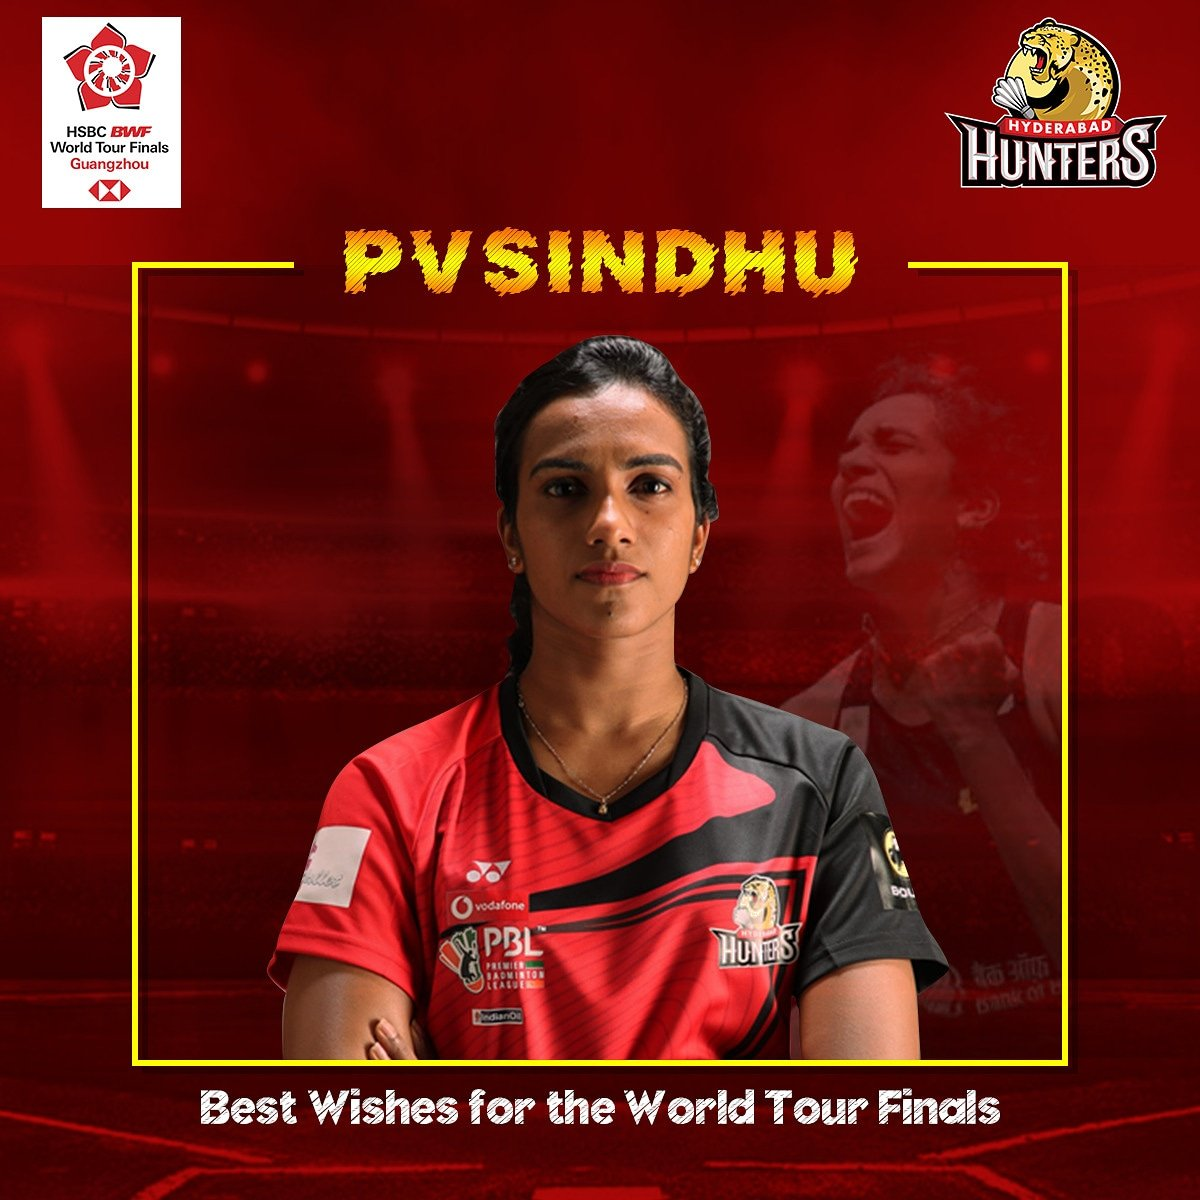 The season finale is upon us and the skipper will be in the thick of it all! All best to @Pvsindhu1 for the #hsbcworldtourfinals in #ghoungzhou #hsbcbwfbadminton #HuntersArmy #HyderabadHunters #pvsindhu #indianbadminton